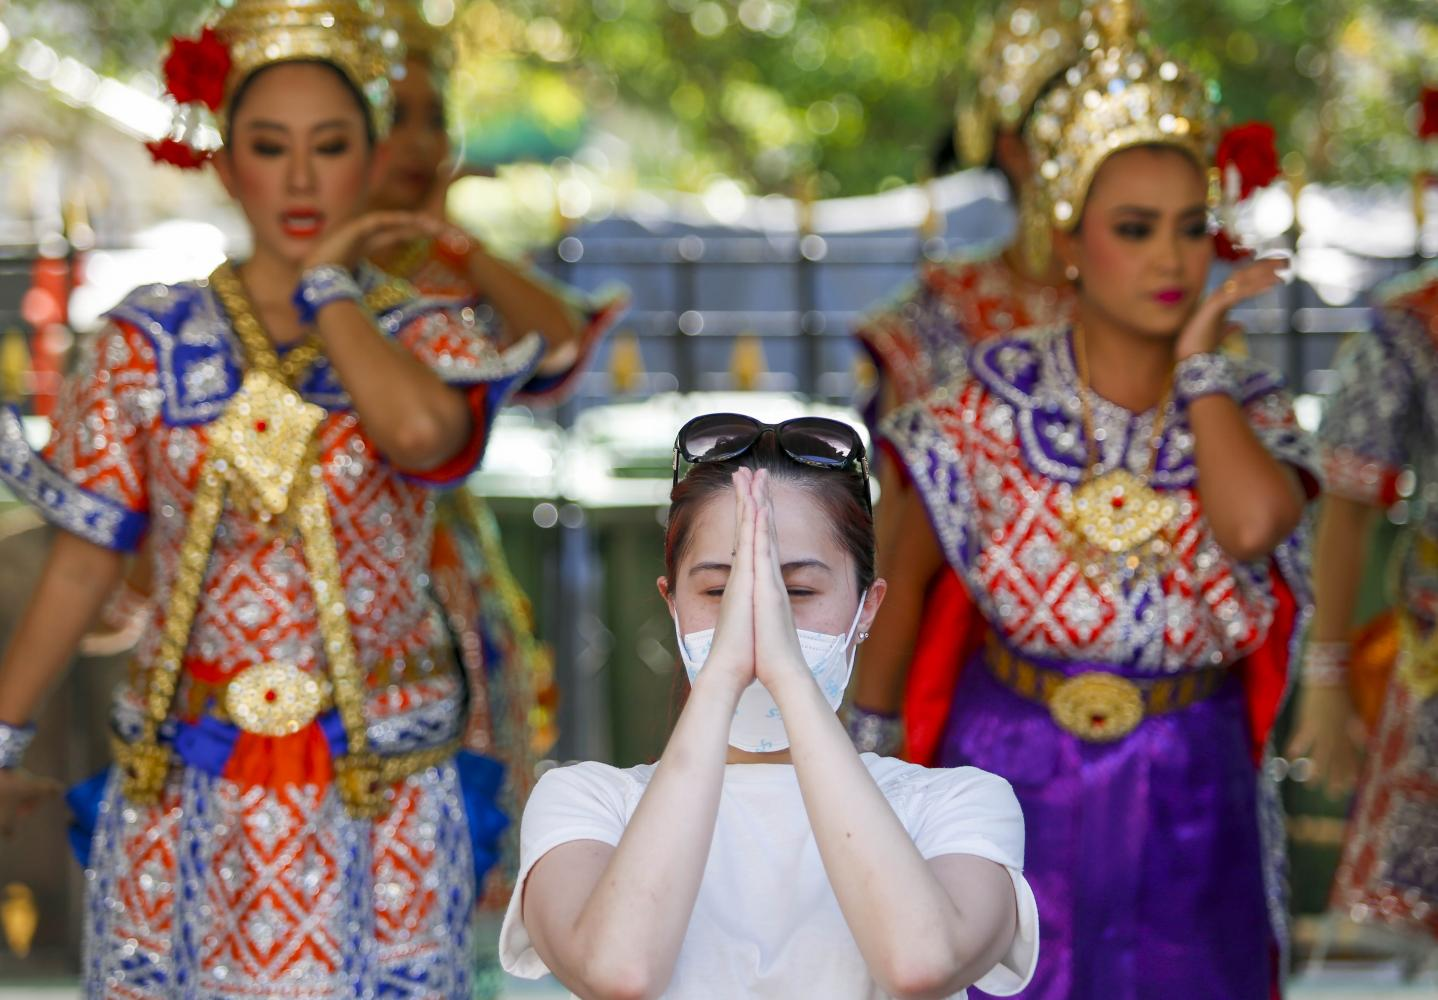 A Chinese tourist at the Erawan shrine at Ratchaprasong intersection prays while wearing a face mask. (Photo by Pattarapong Chatpattarasill)